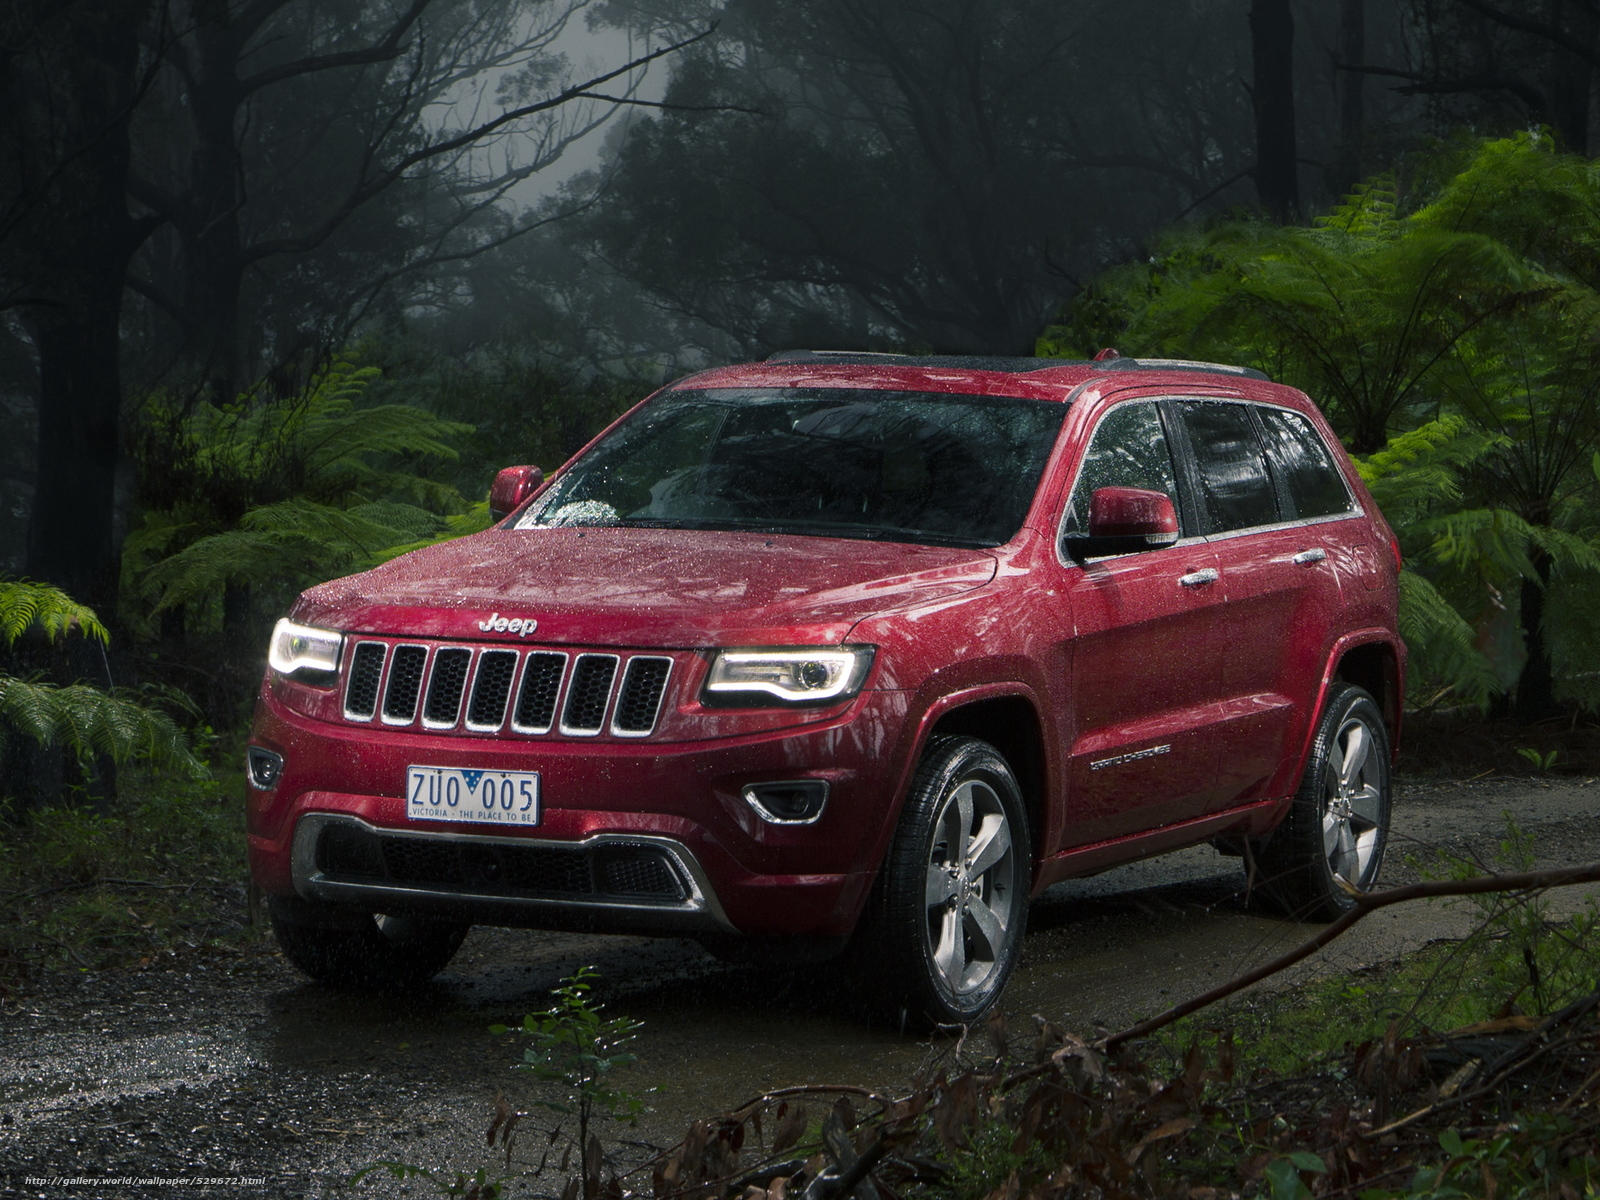 jeep au with 2048x1536 on Bmw Gets Ahead Of Itself With An M8 4 Door Concept 13625084 furthermore Bundes Autobahn 2 likewise Josh Cuthbert additionally 53 Nissan Navara Front Bar in addition Suv.